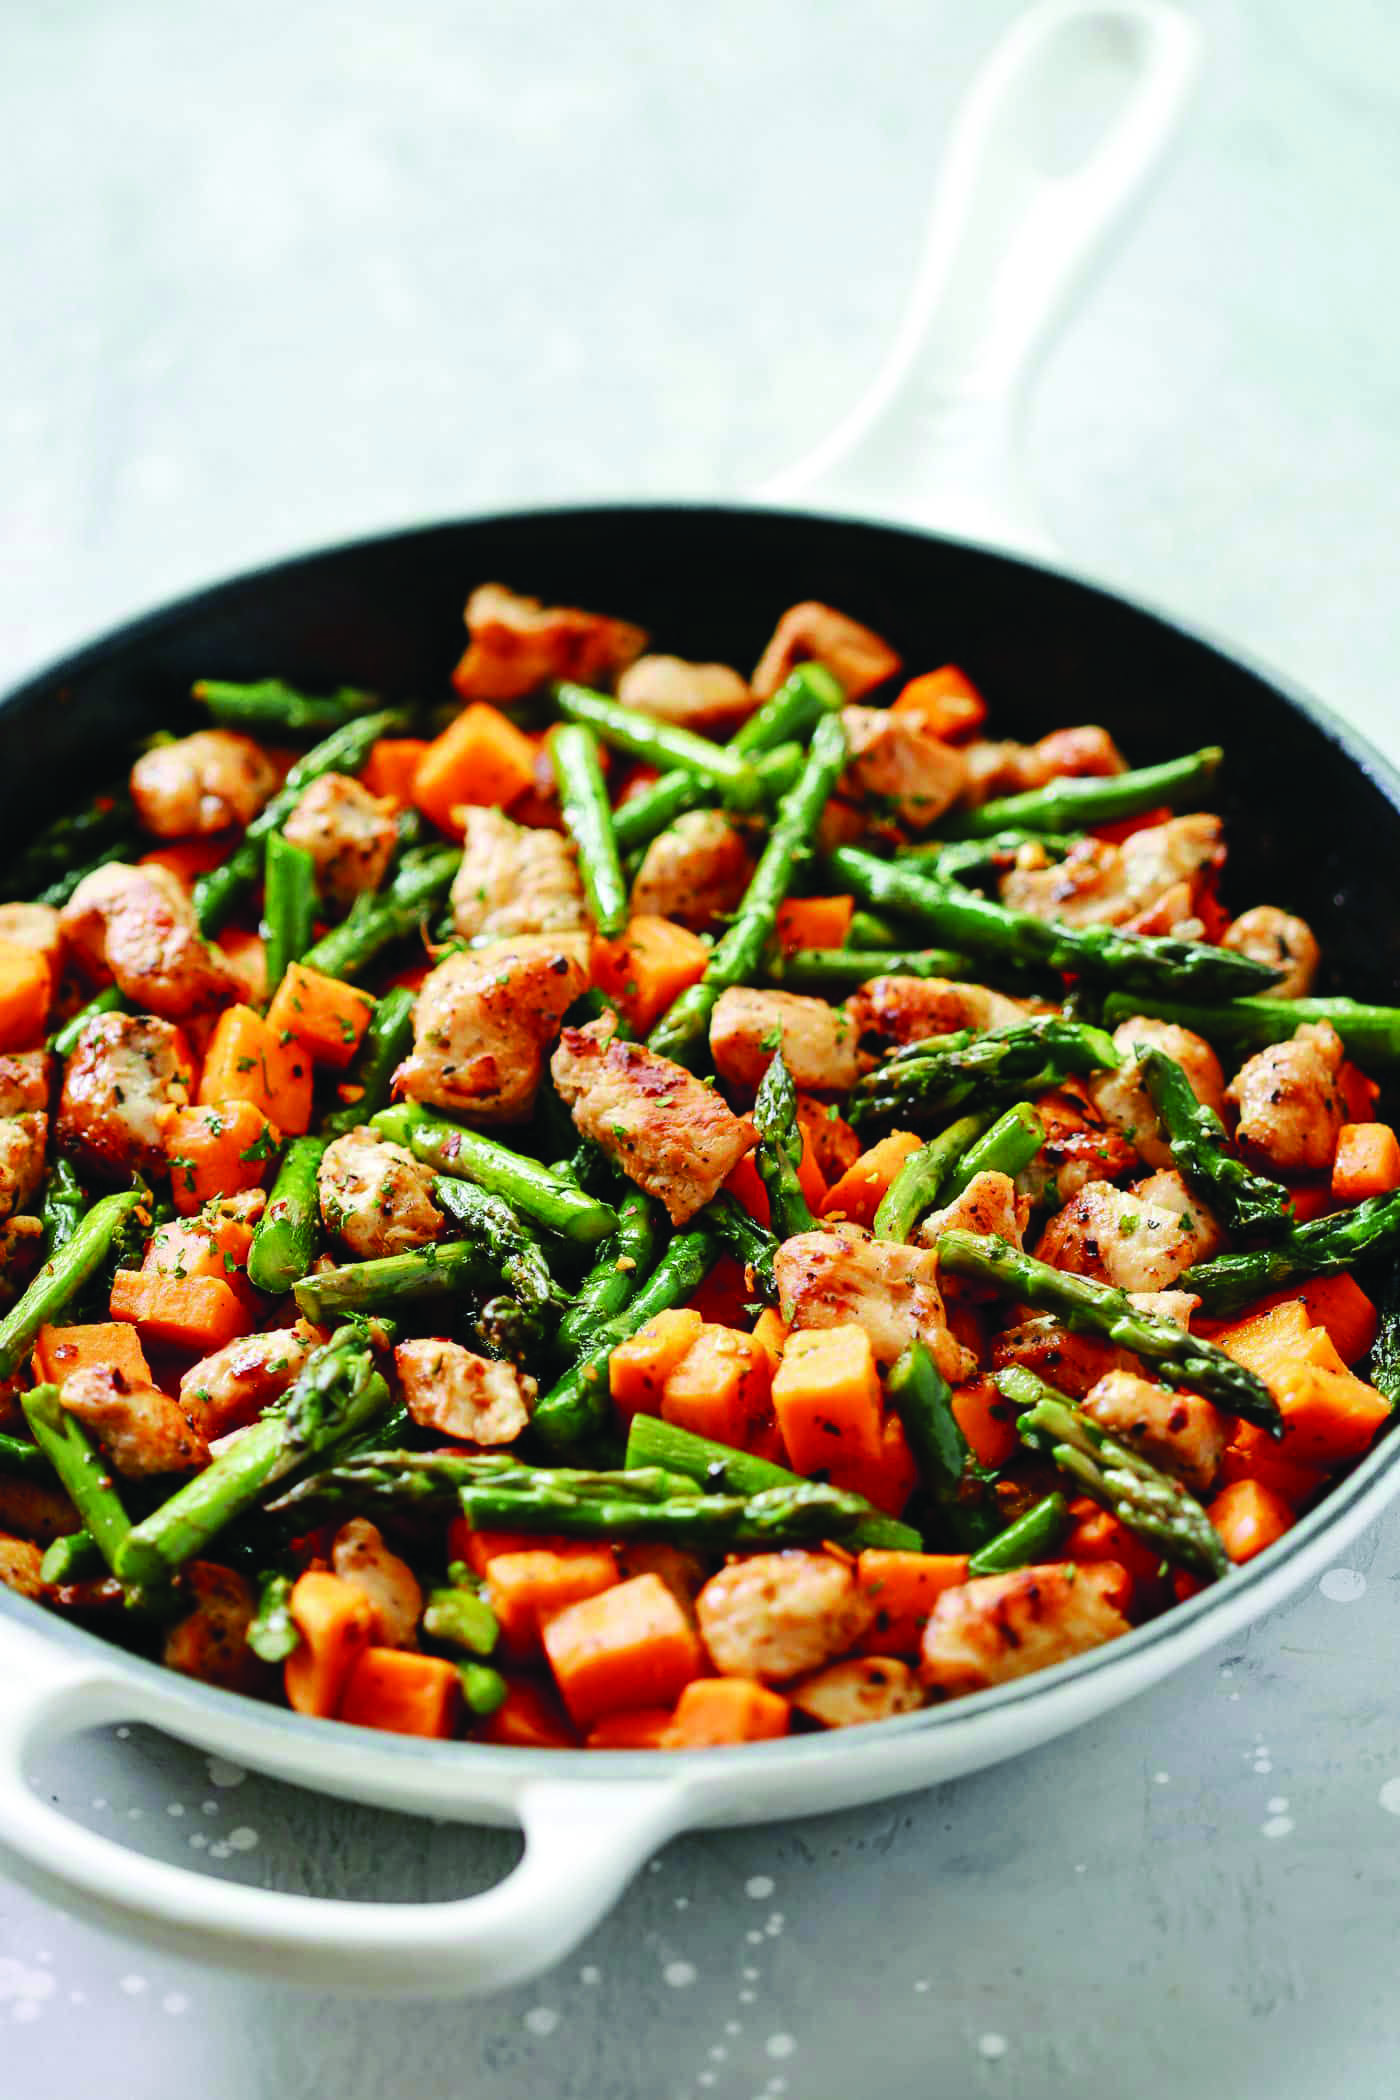 Pictures of Healthy Dinner Meal Ideas Nz